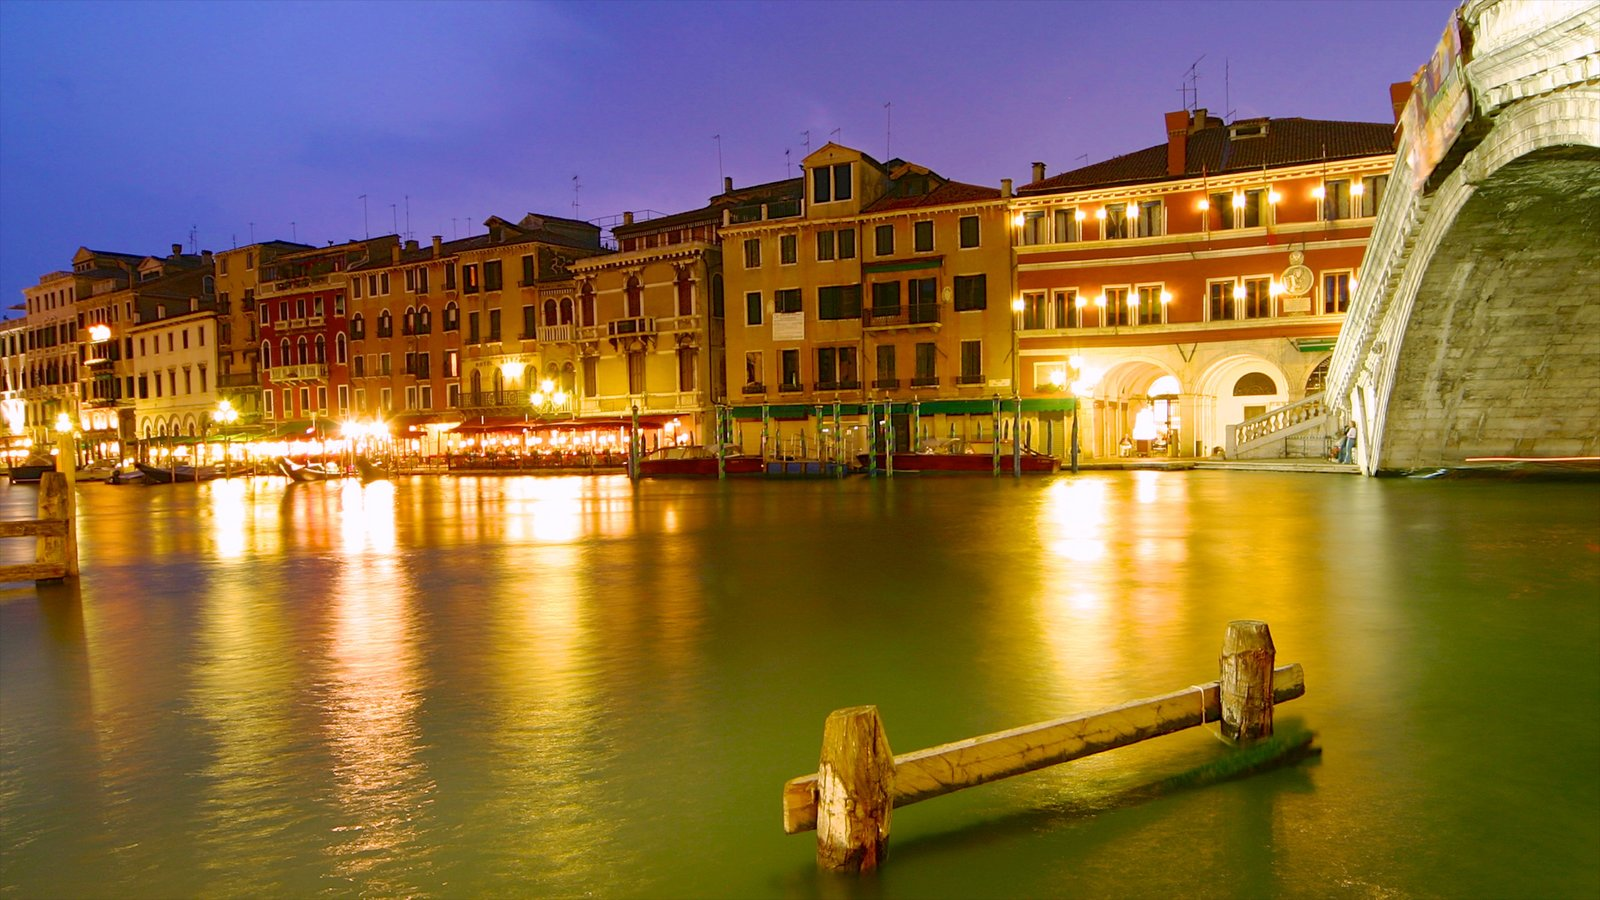 Grand Canal showing heritage architecture, night scenes and a city